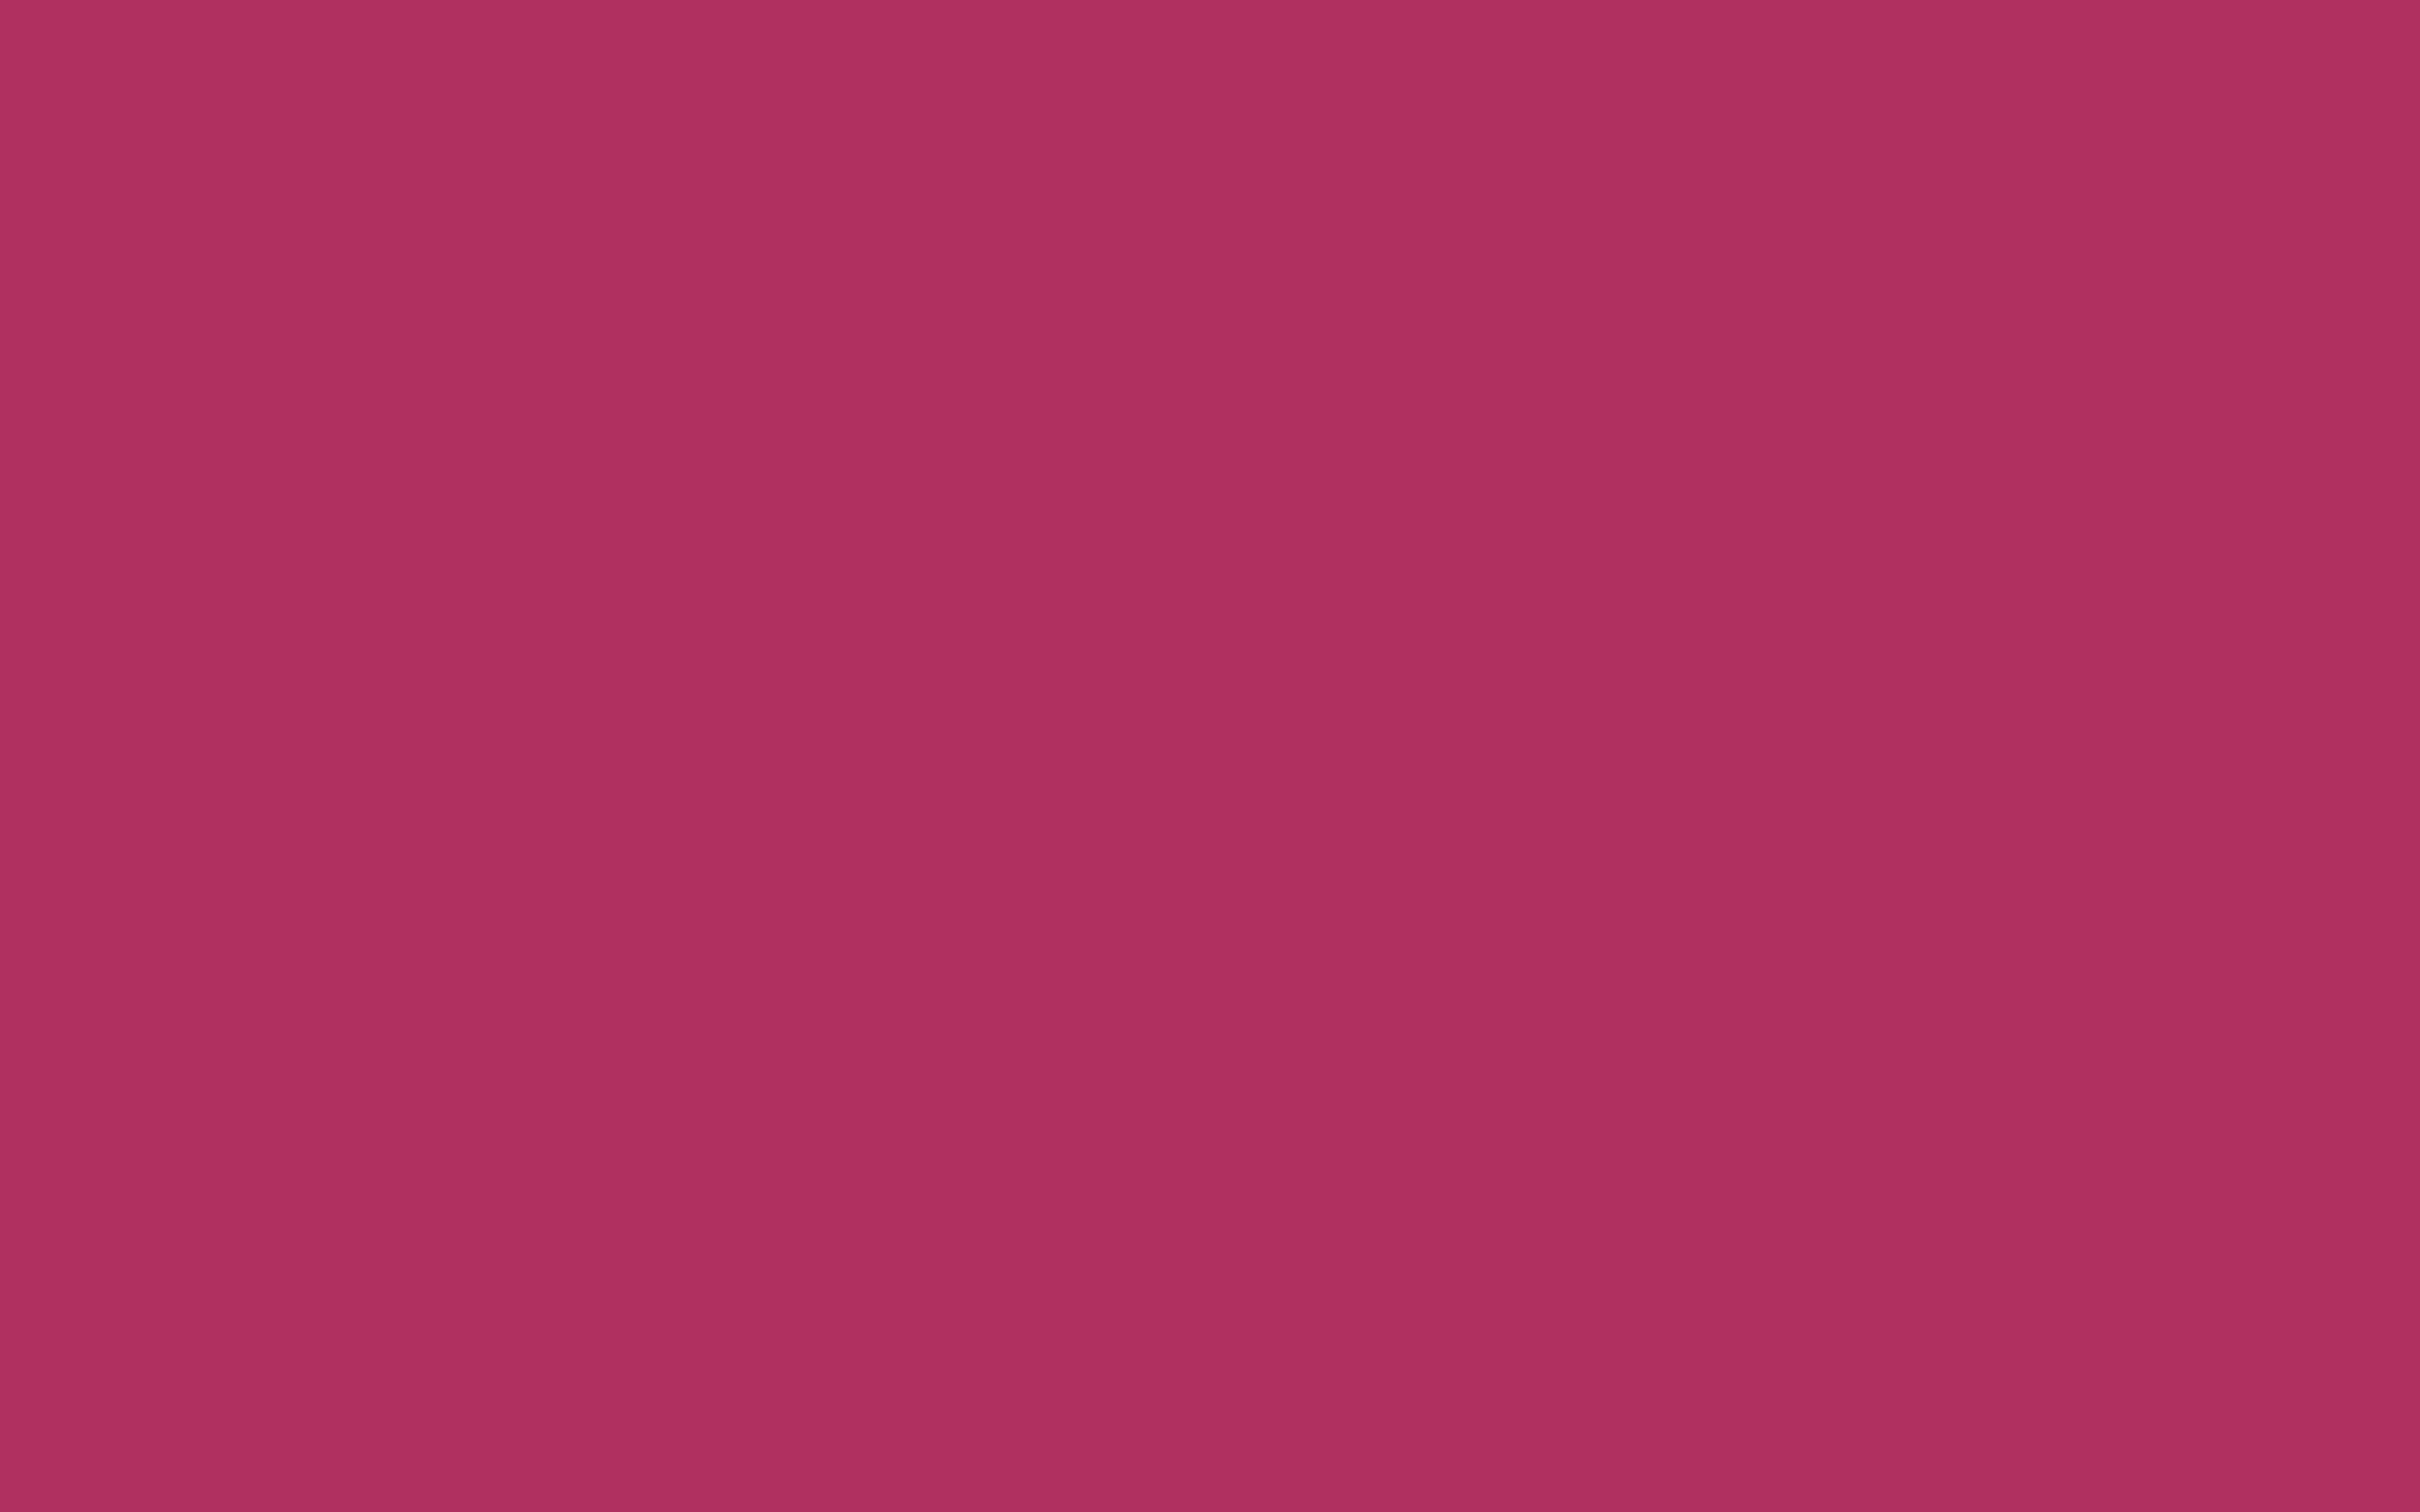 2880x1800 Rich Maroon Solid Color Background